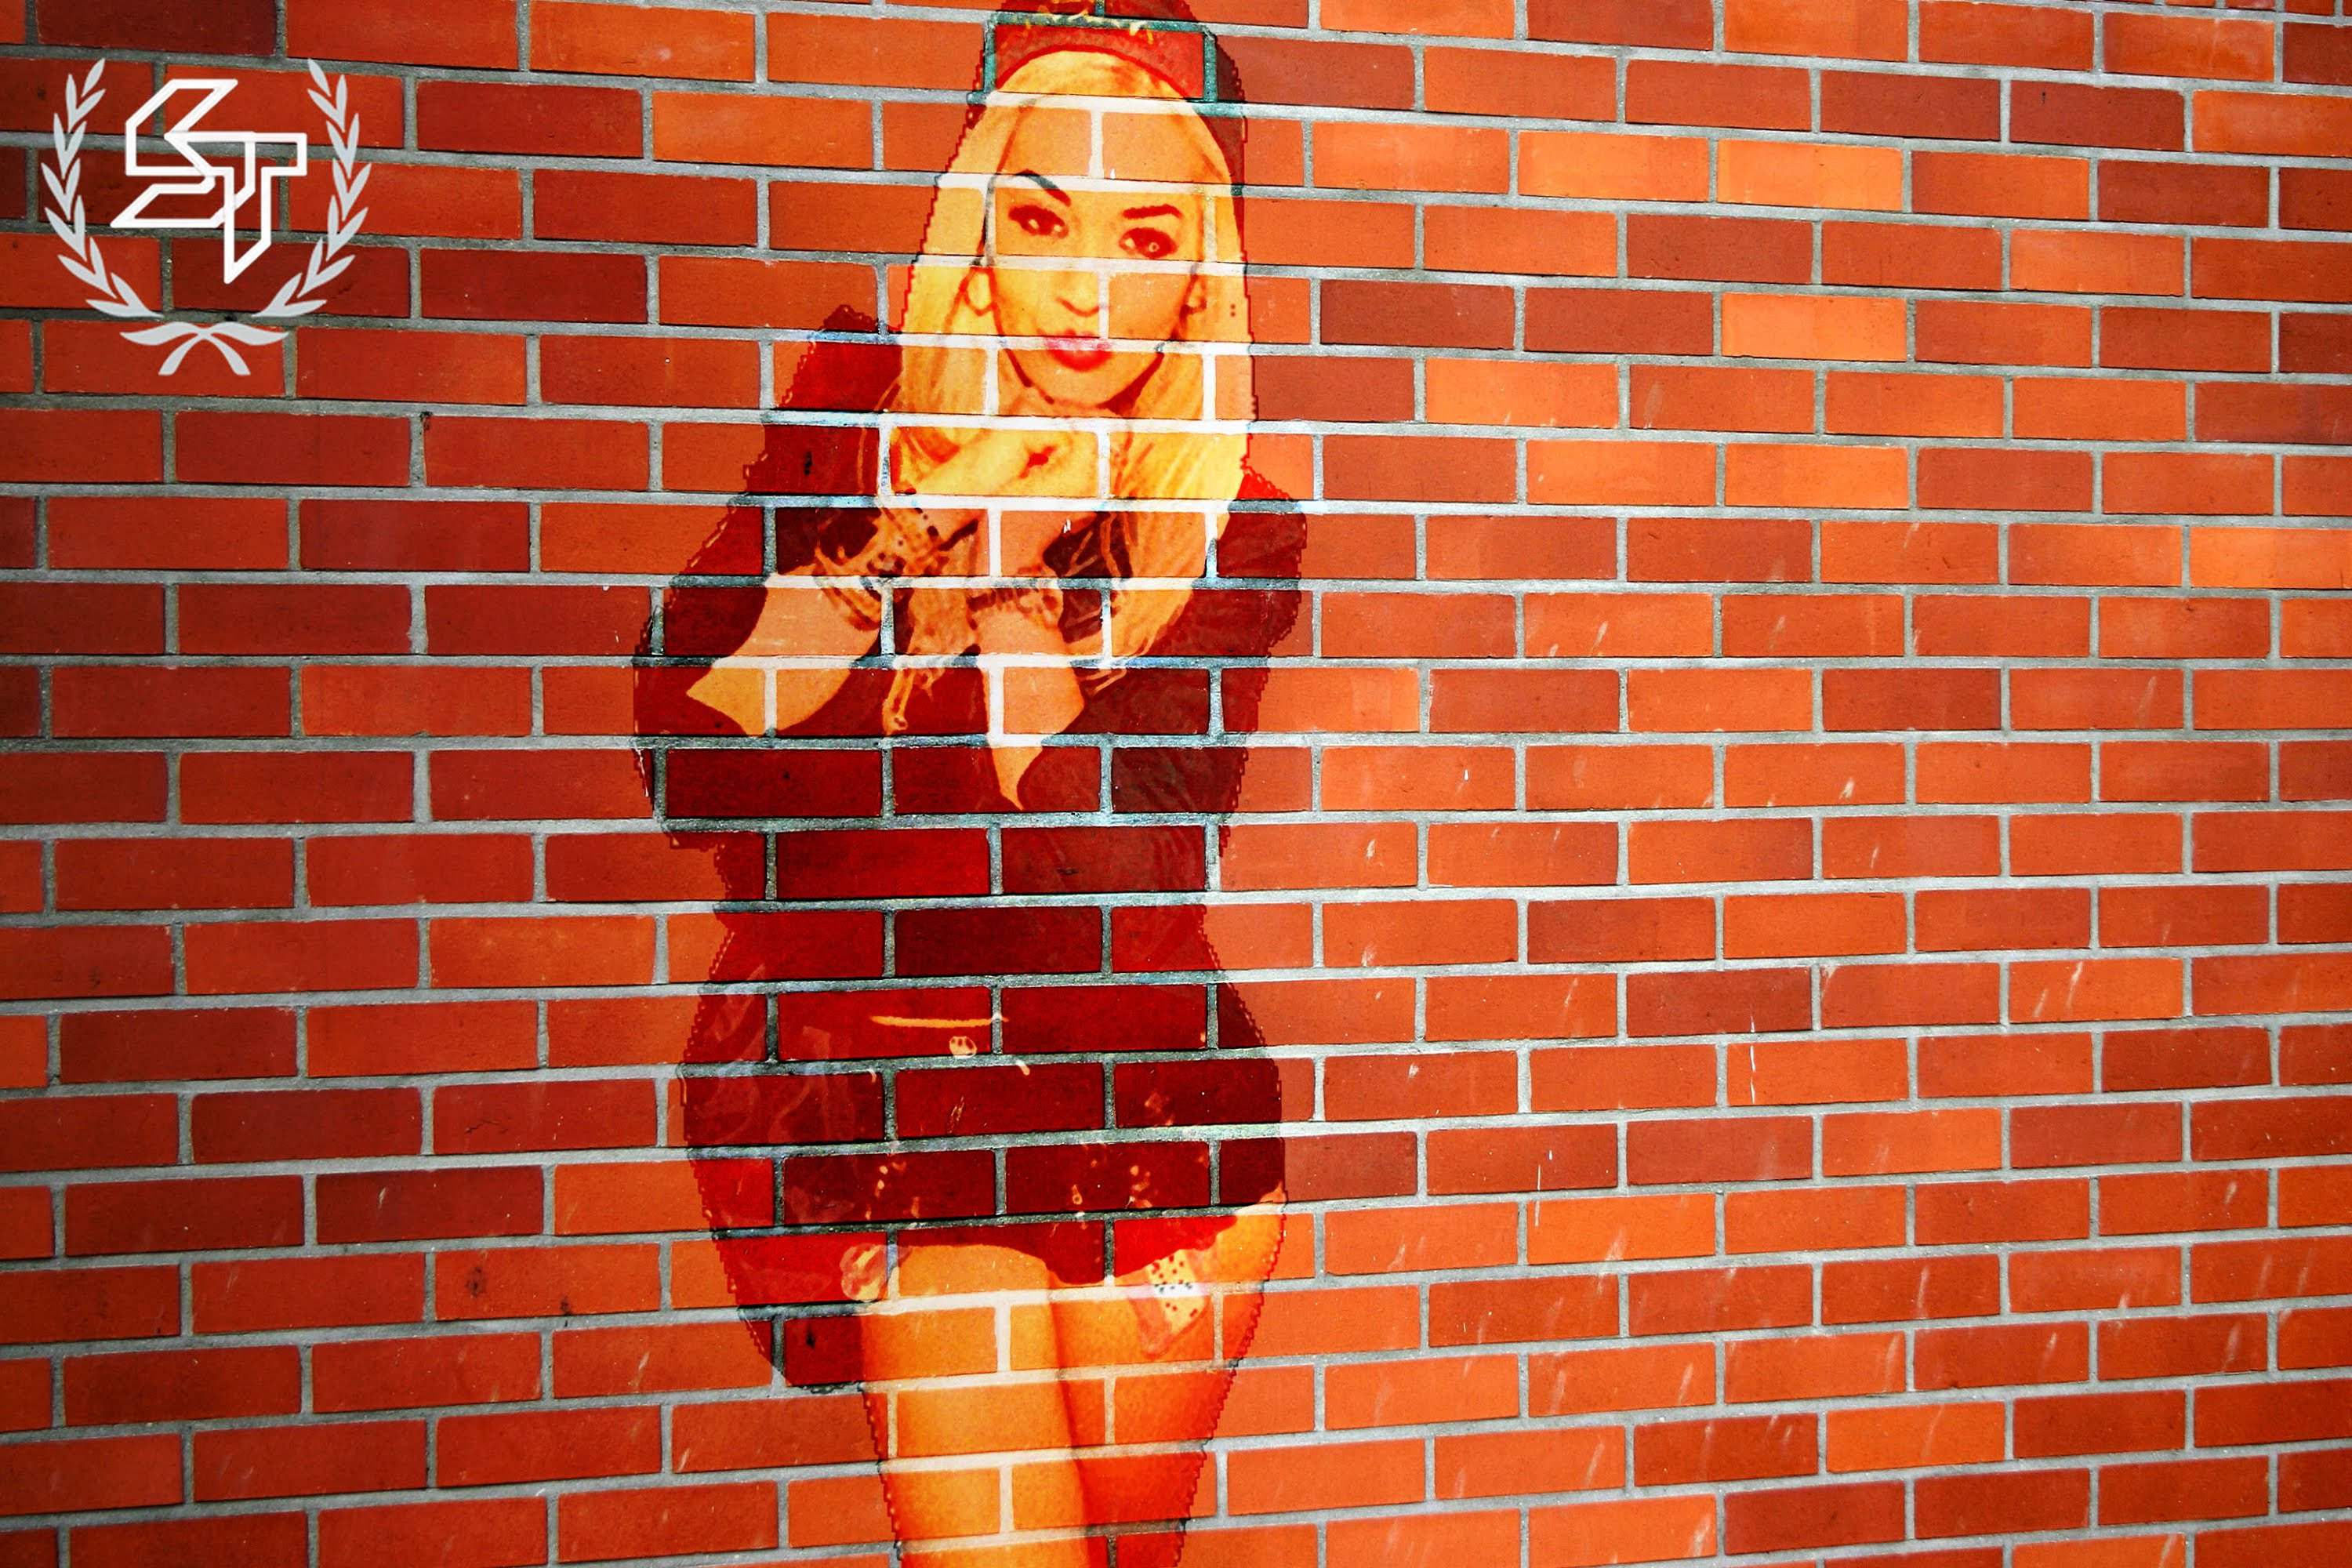 Create a Brick Wall Portrait in Photoshop - YouTube